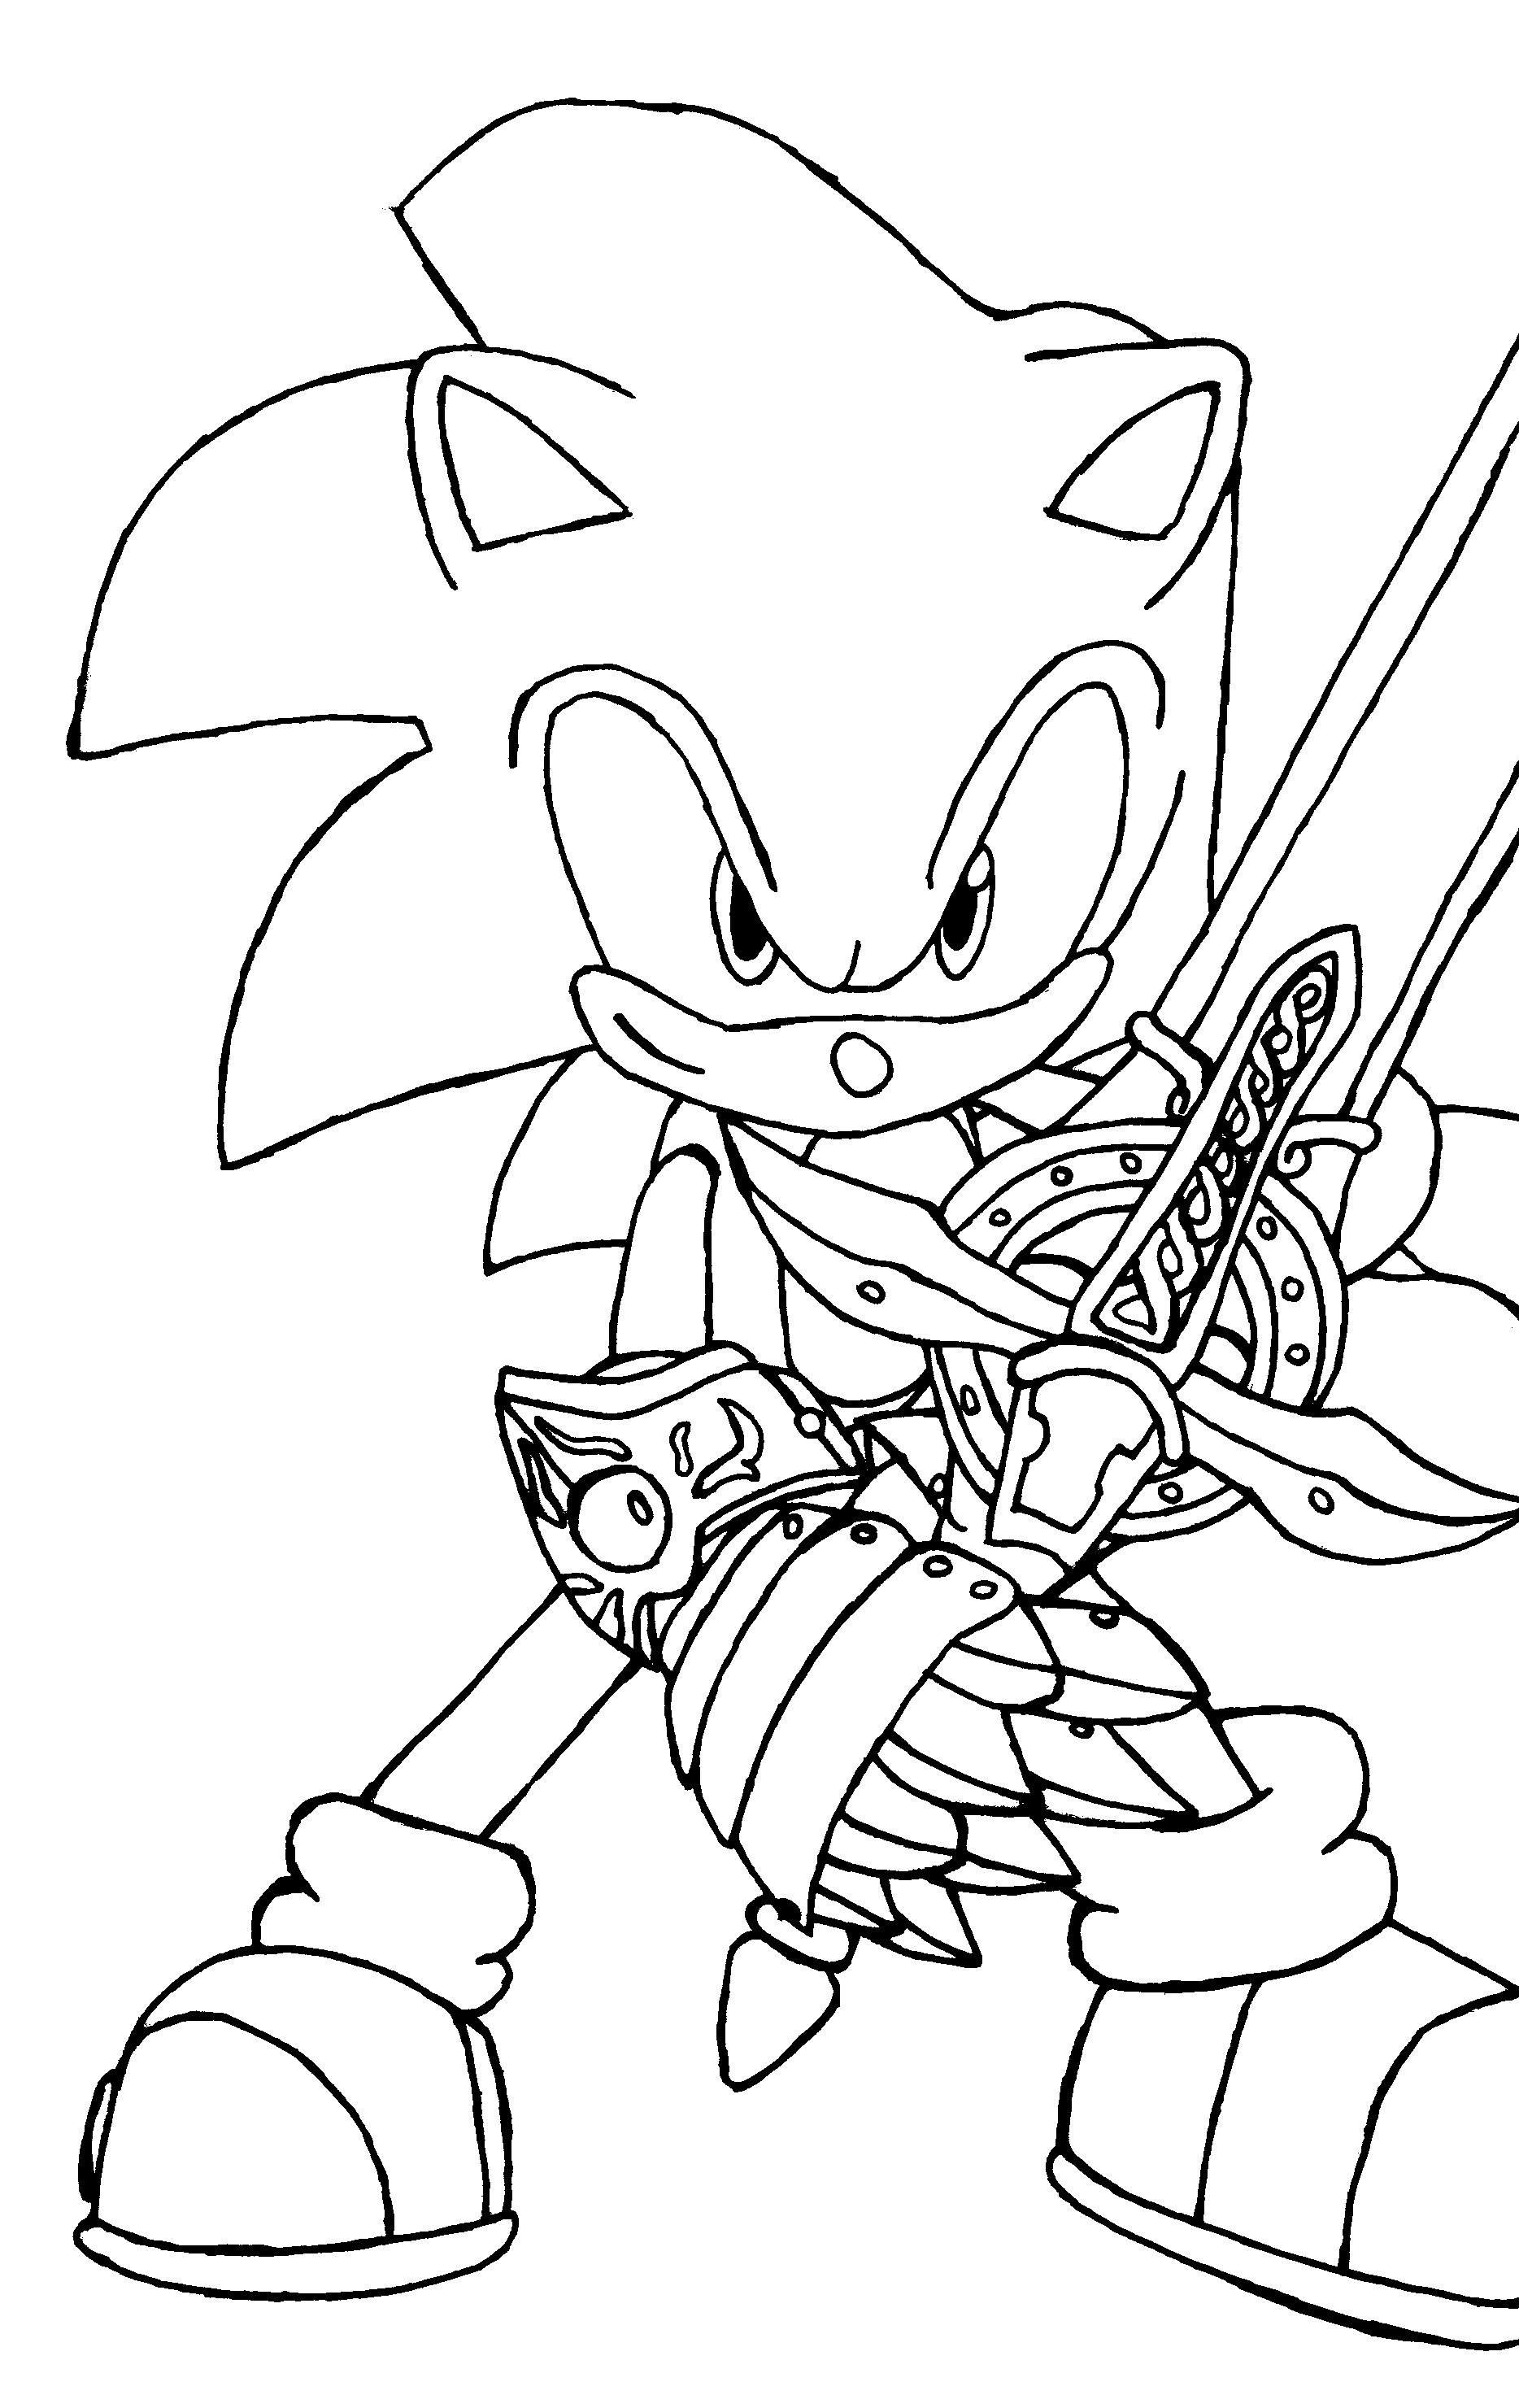 sonic coloring pages online for free sonic the hedgehog coloring pages to download and print free pages for online coloring sonic